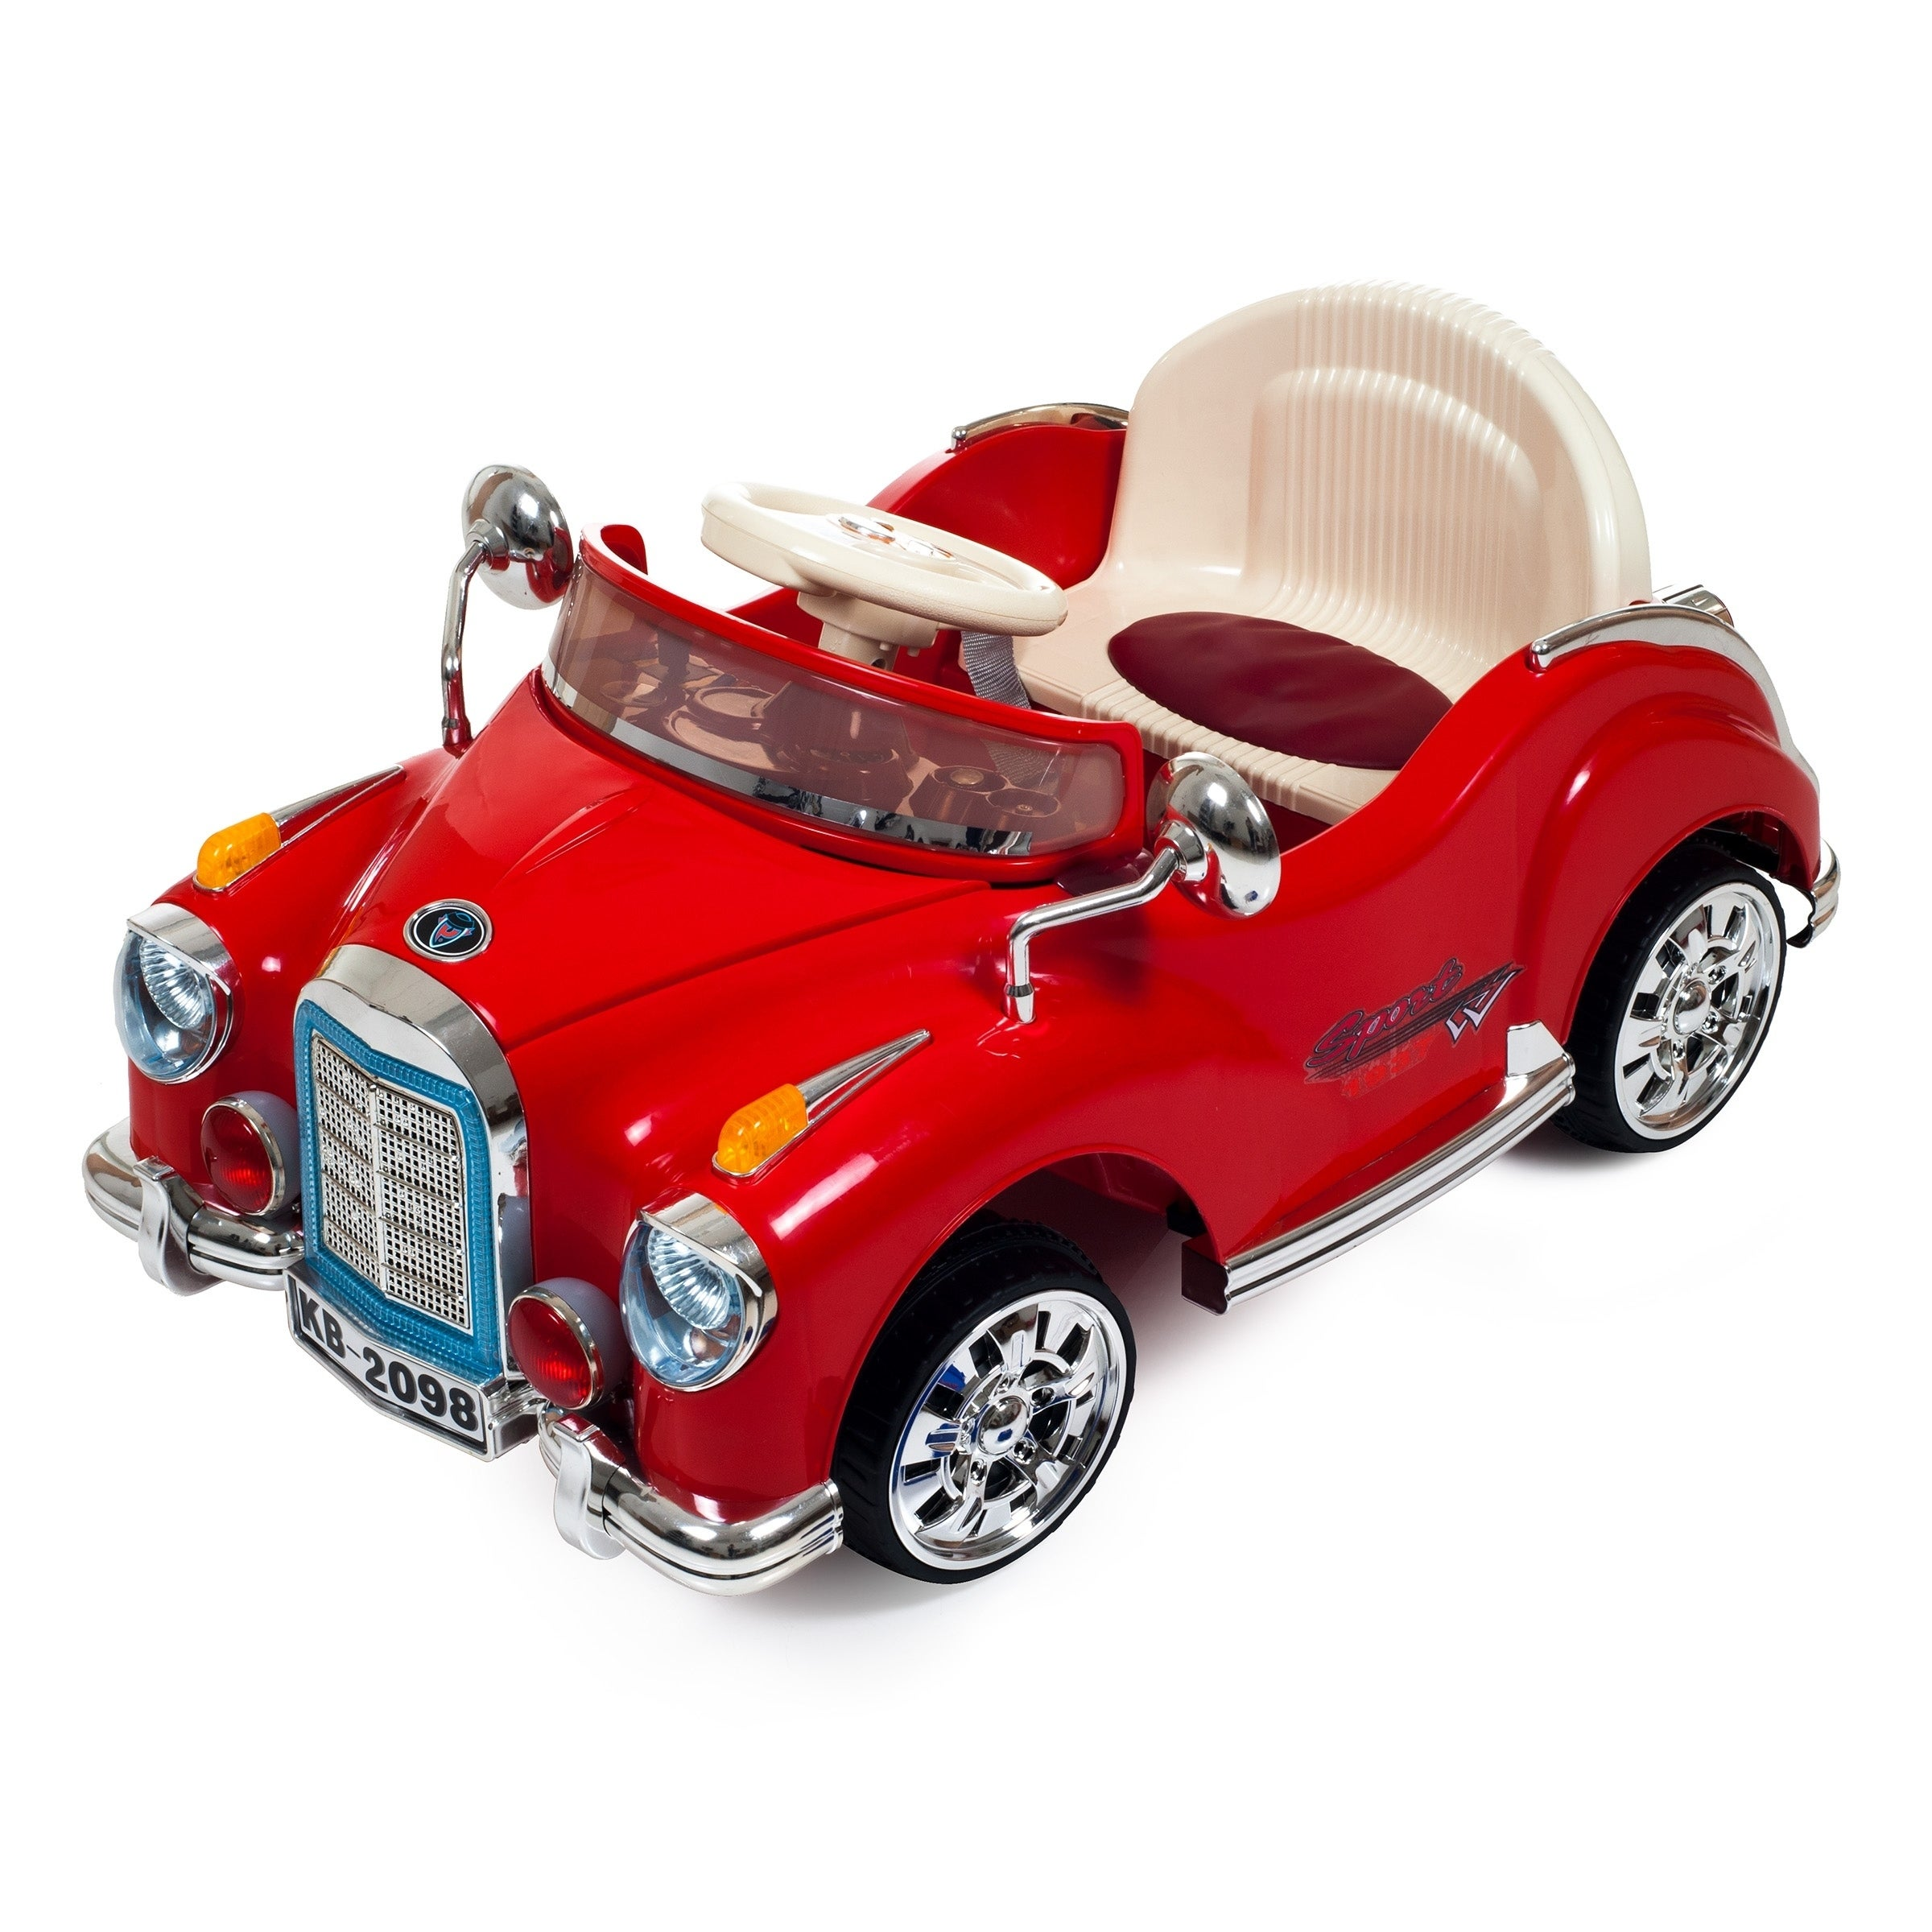 Trademark Ride On Toy Car, Battery Powered Classic Car Co...